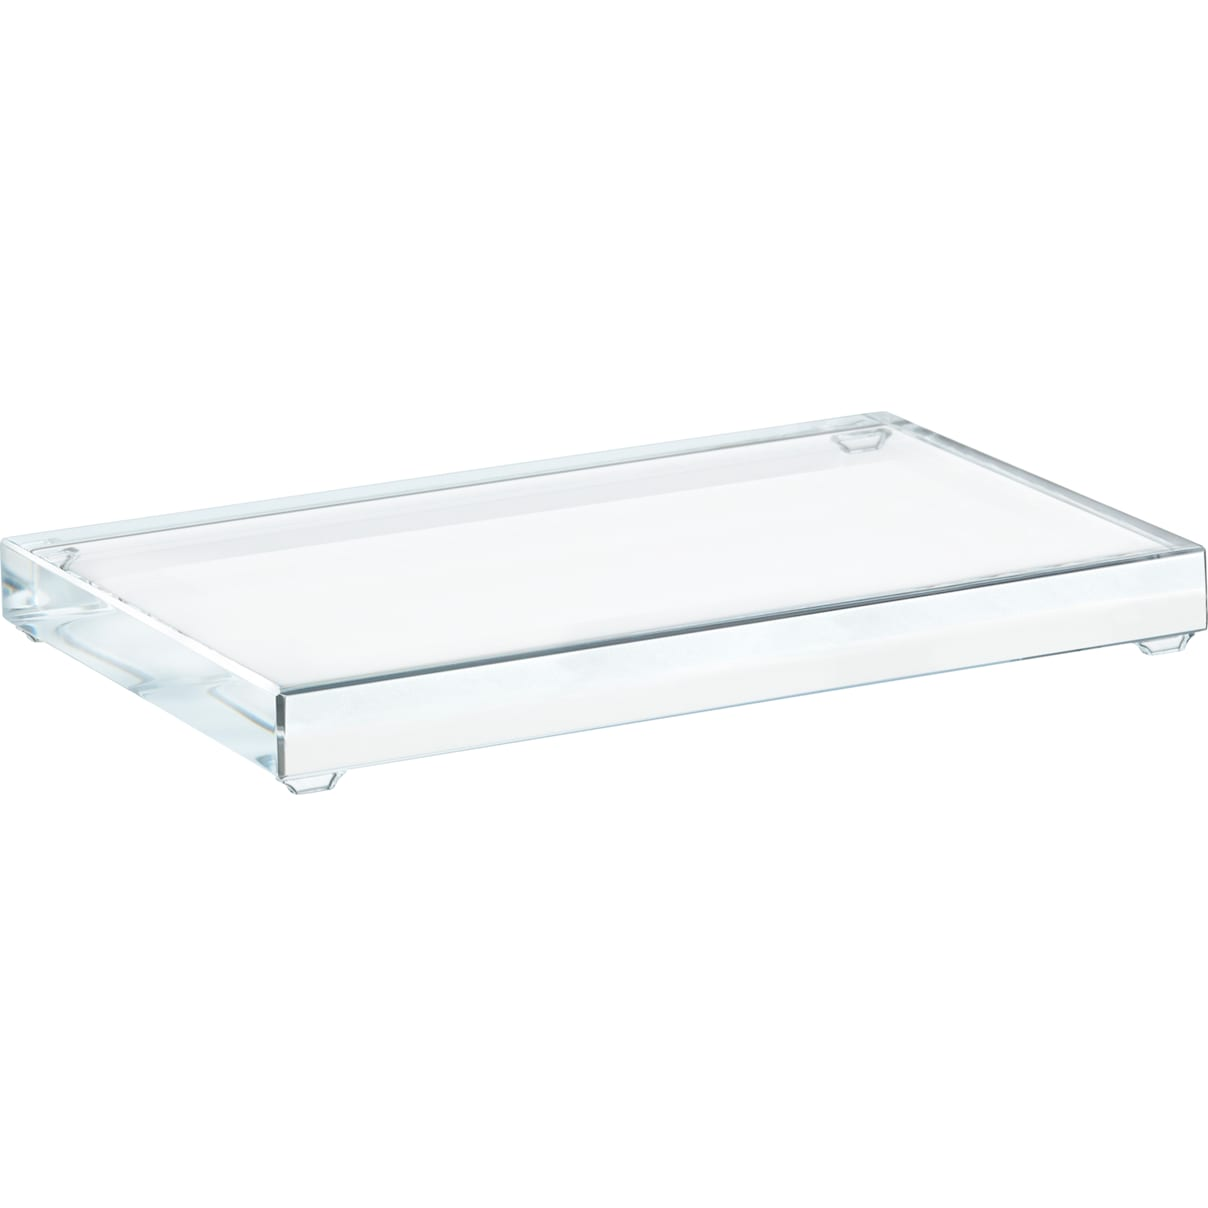 Swarovski Crystal Base, large